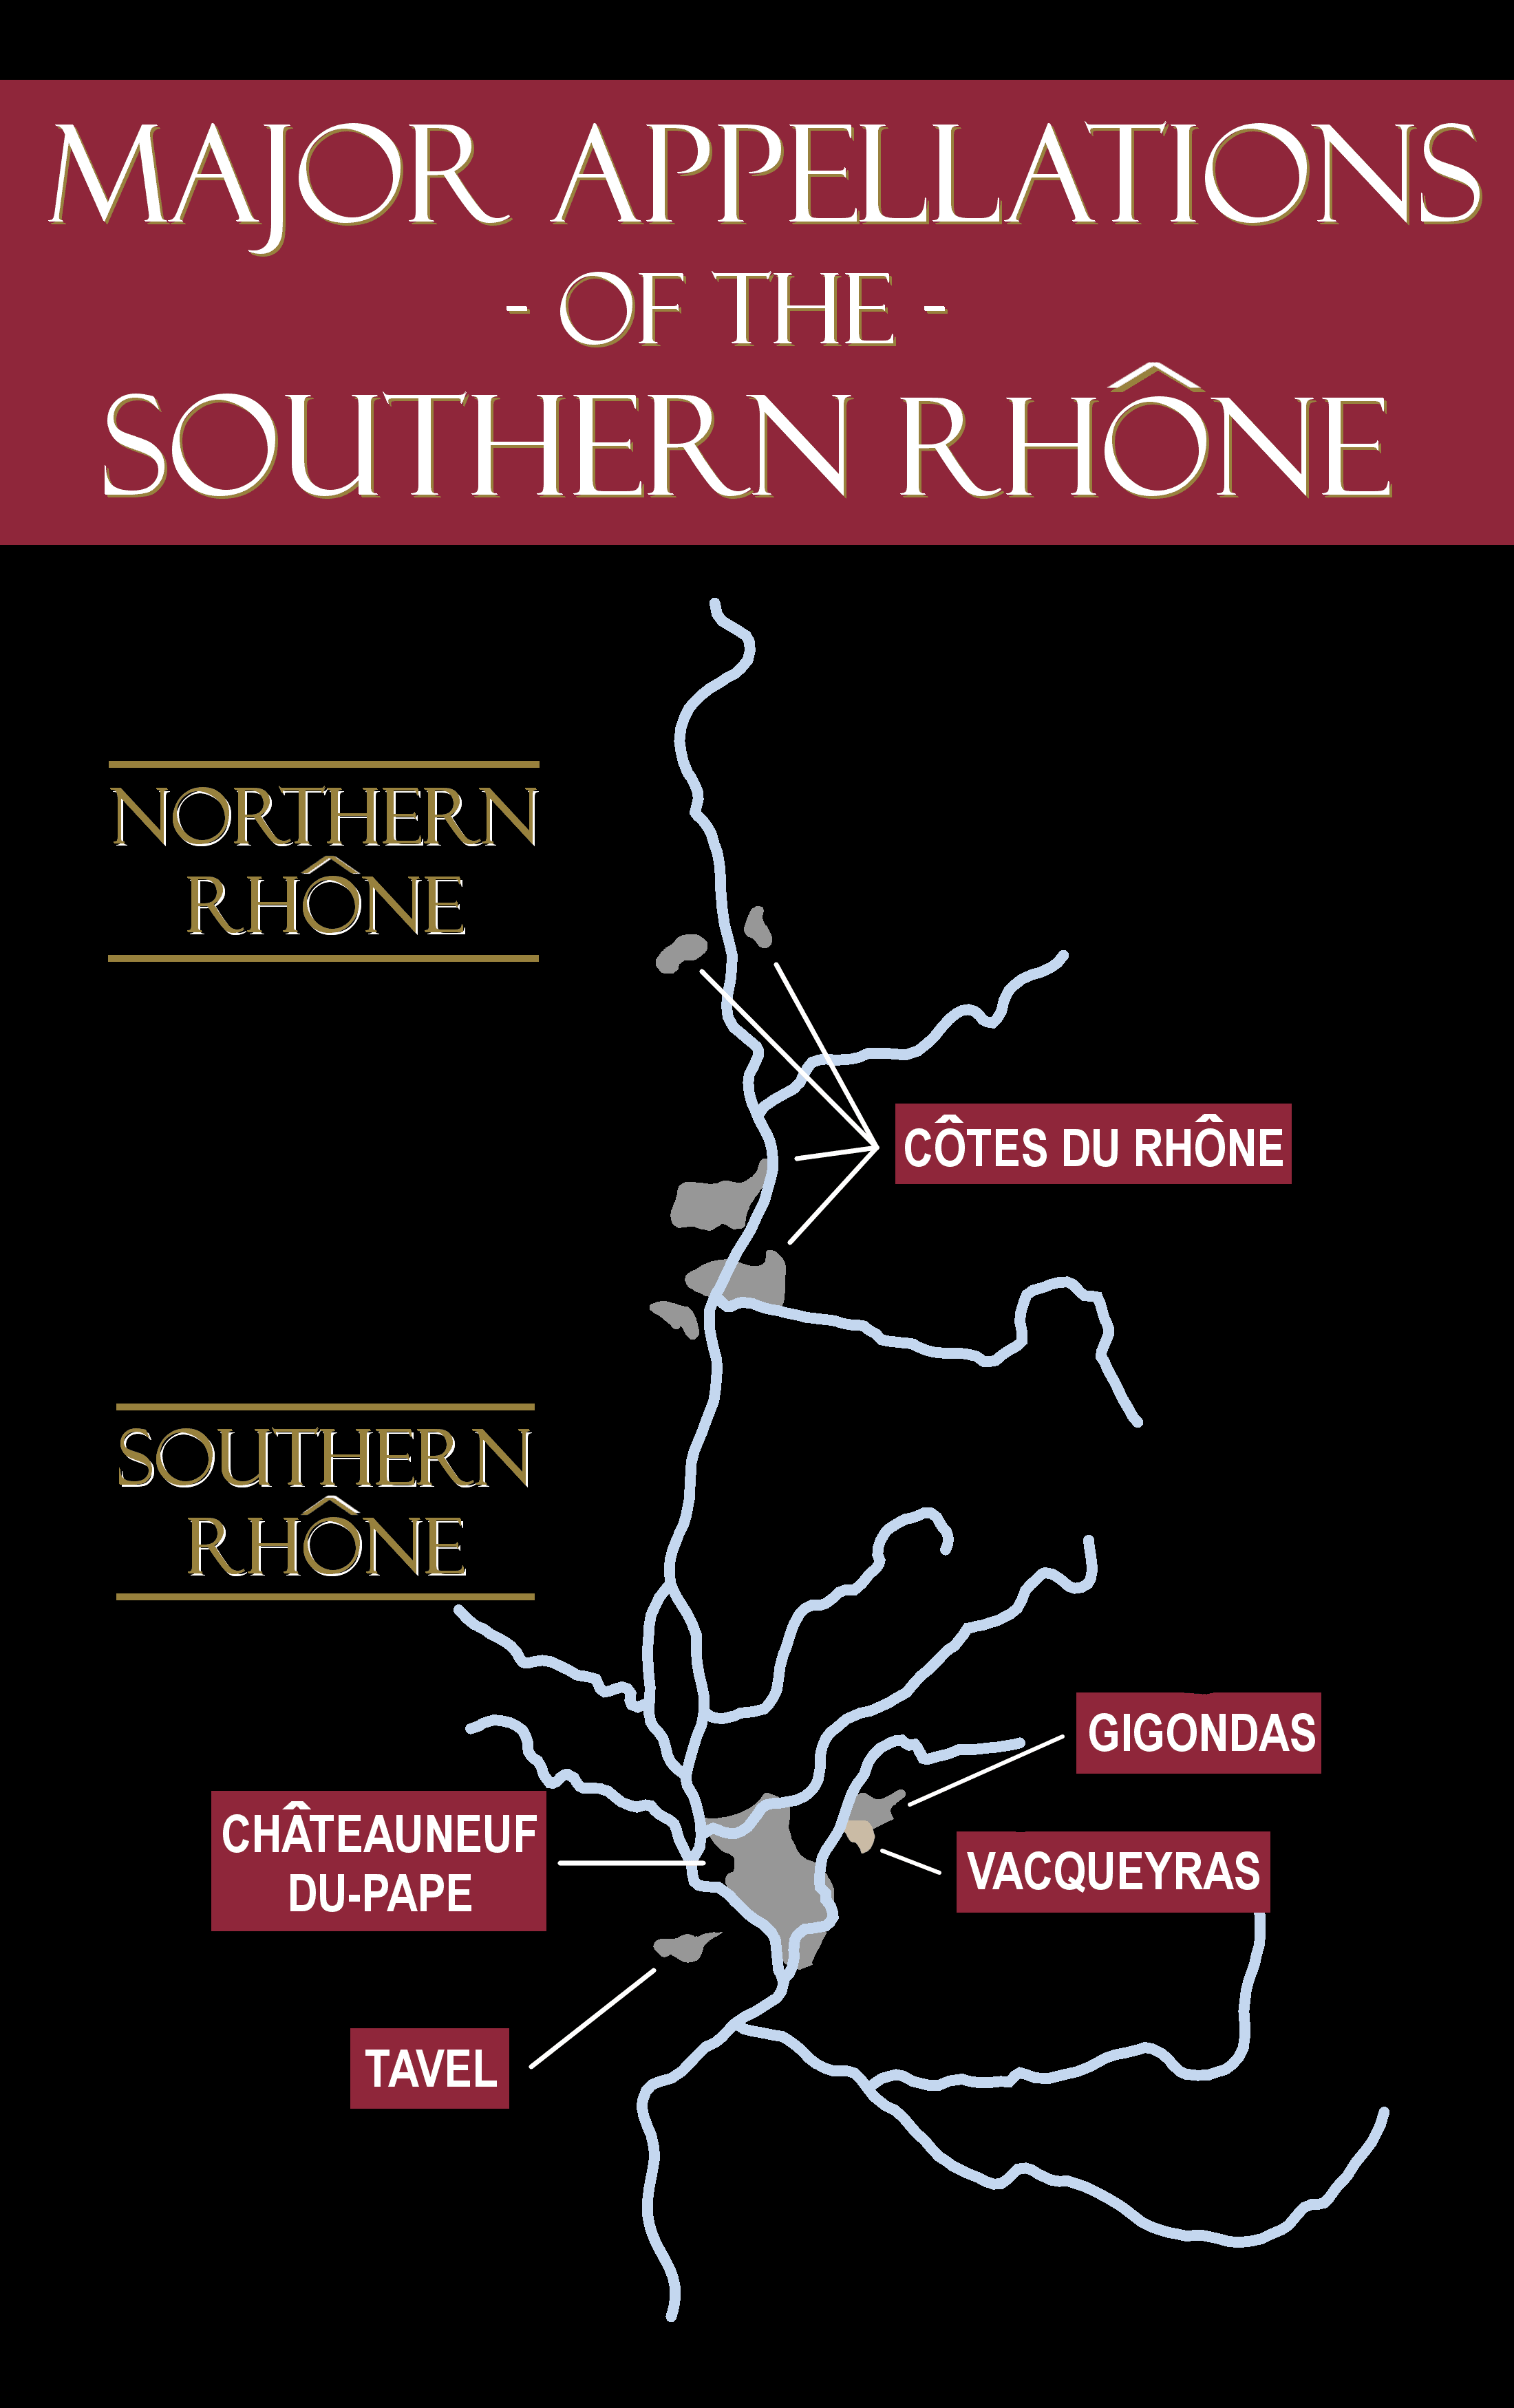 The major appellations of the Southern Rhone have many of the best producers.